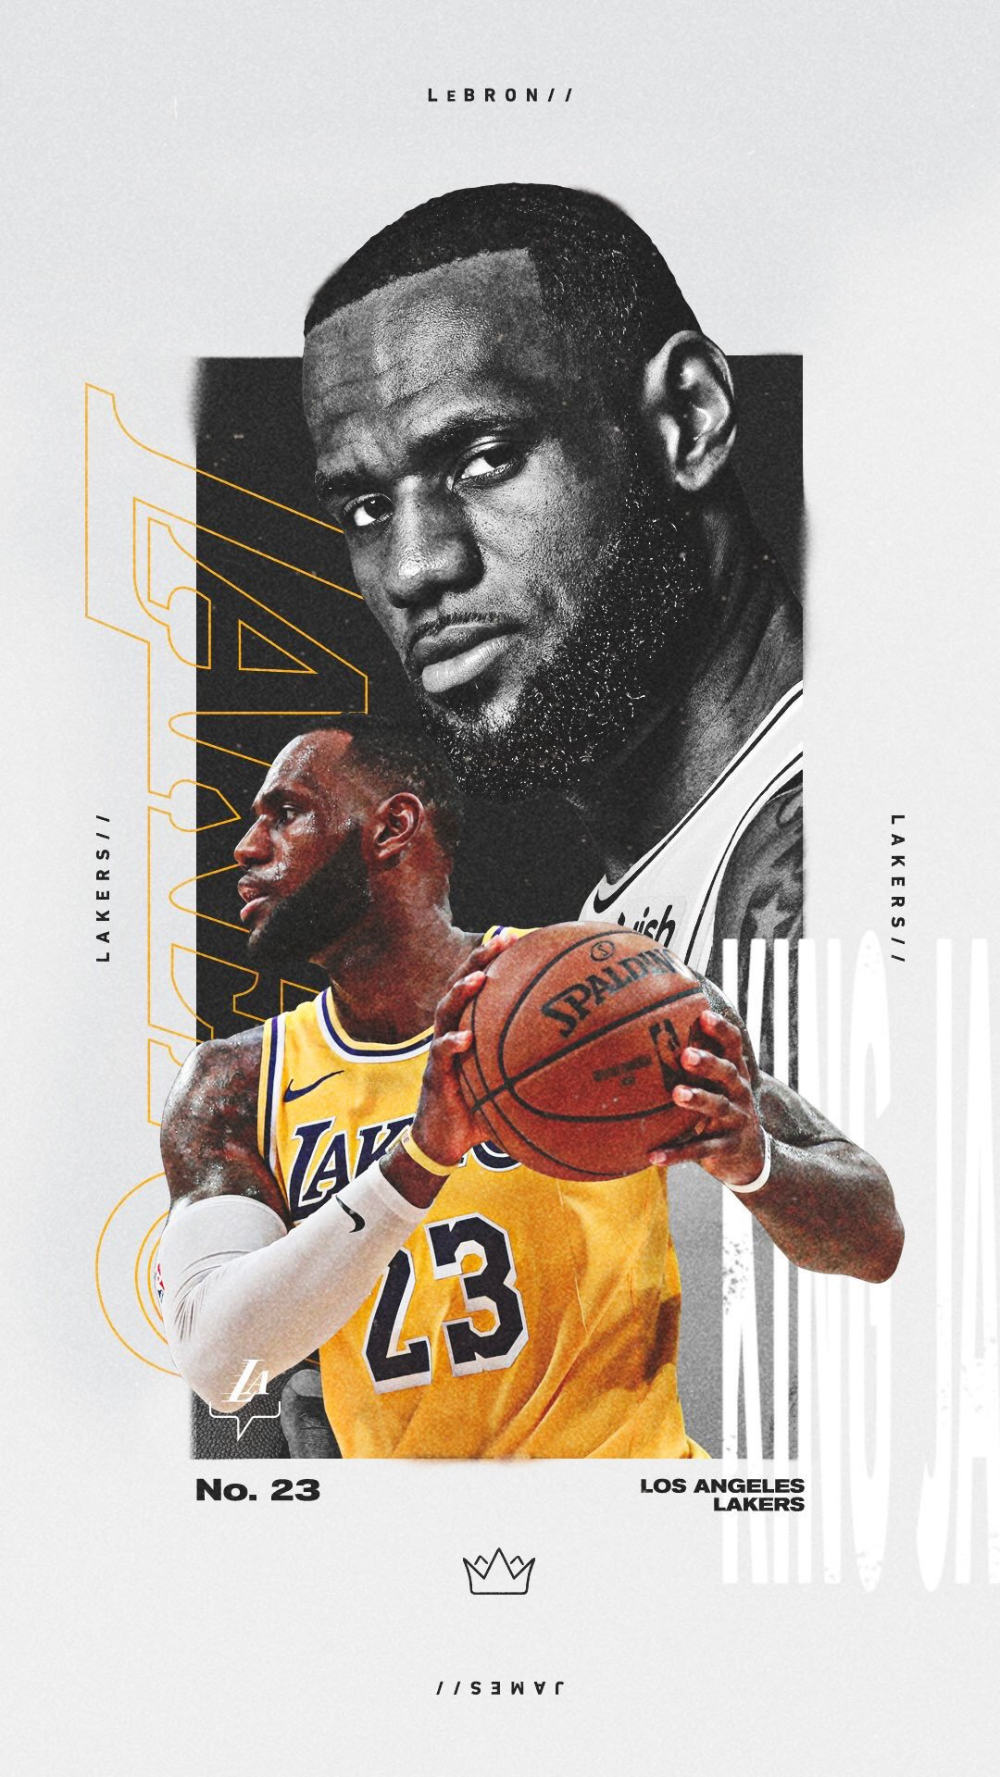 Trenches On Twitter Lebron James Wallpapers Lakers Wallpaper Lebron James Lakers